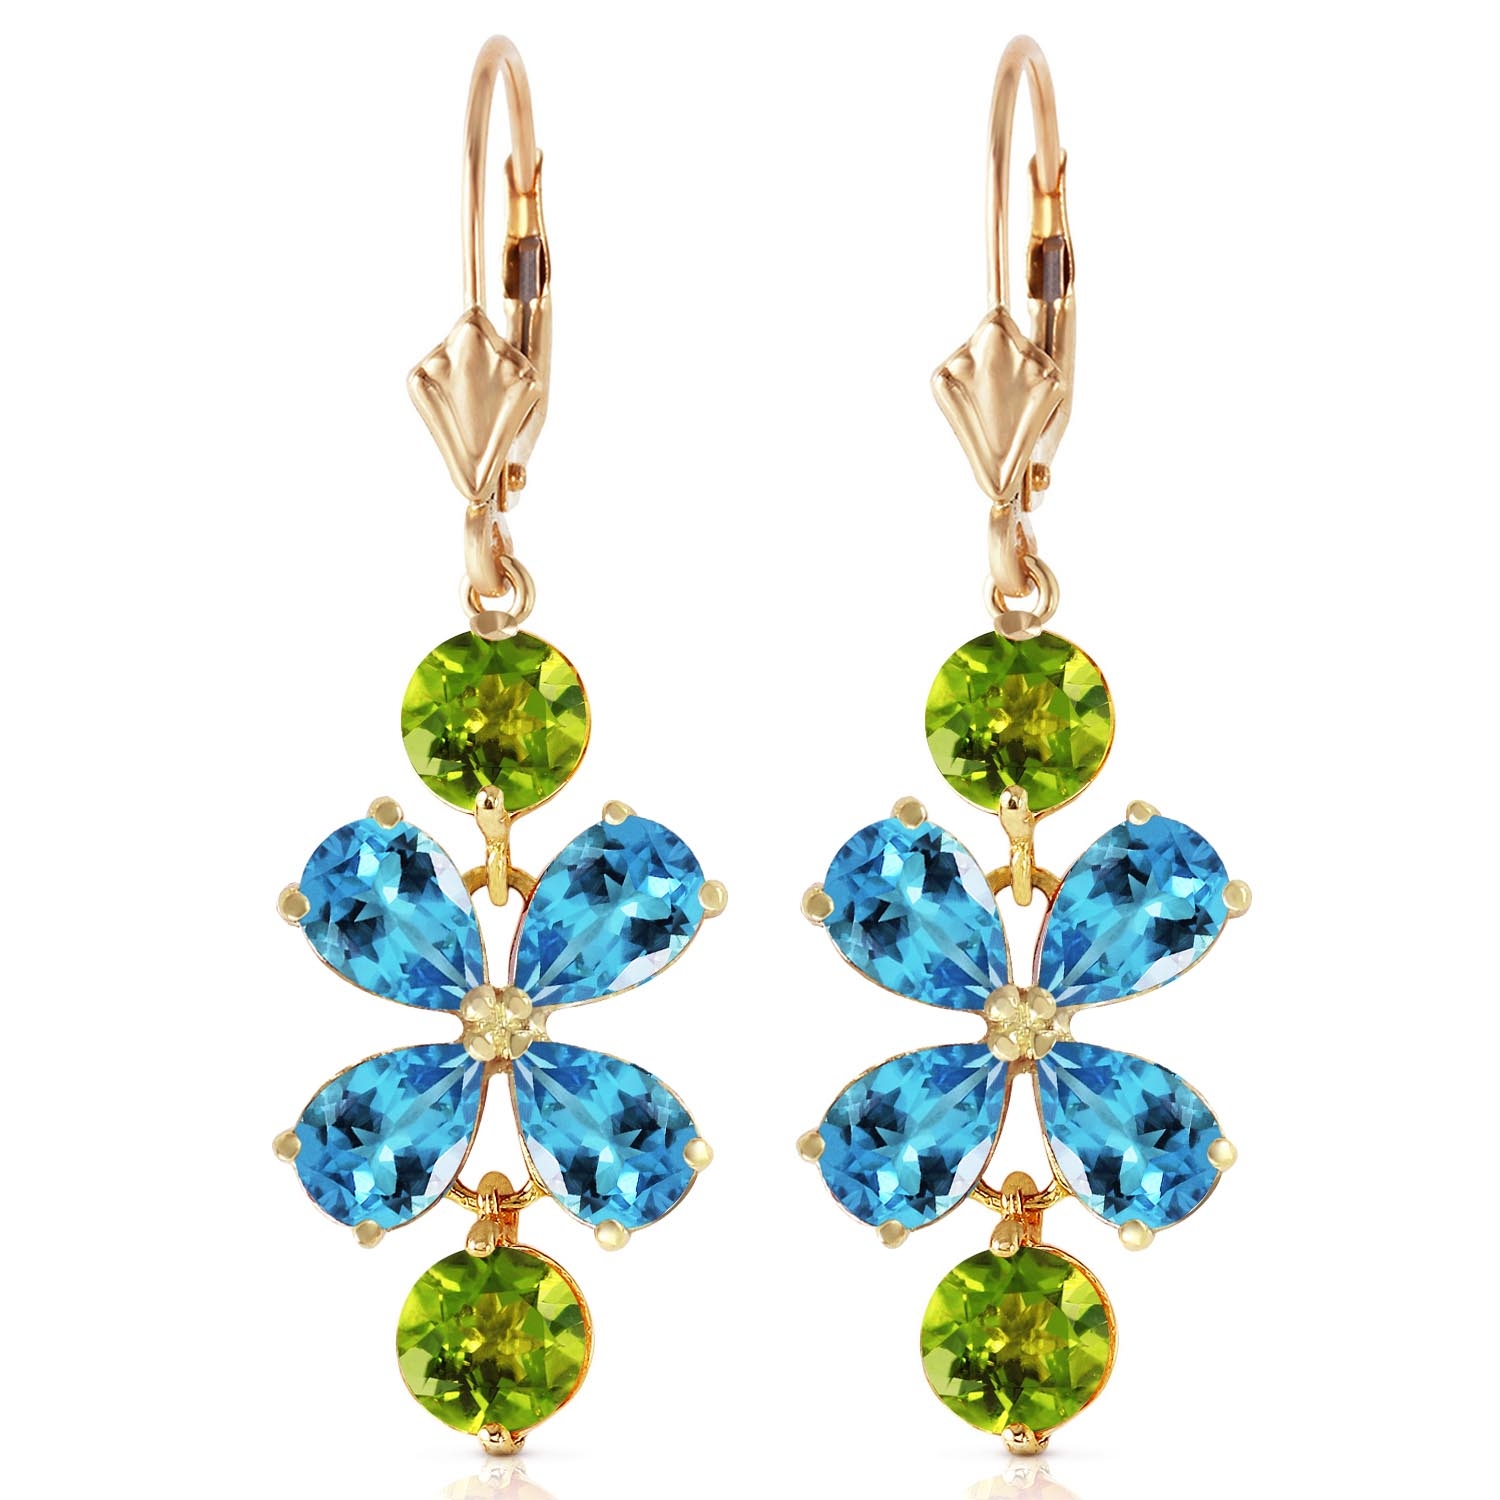 Blue Topaz and Peridot Blossom Drop Earrings 5.32ctw in 14K Gold